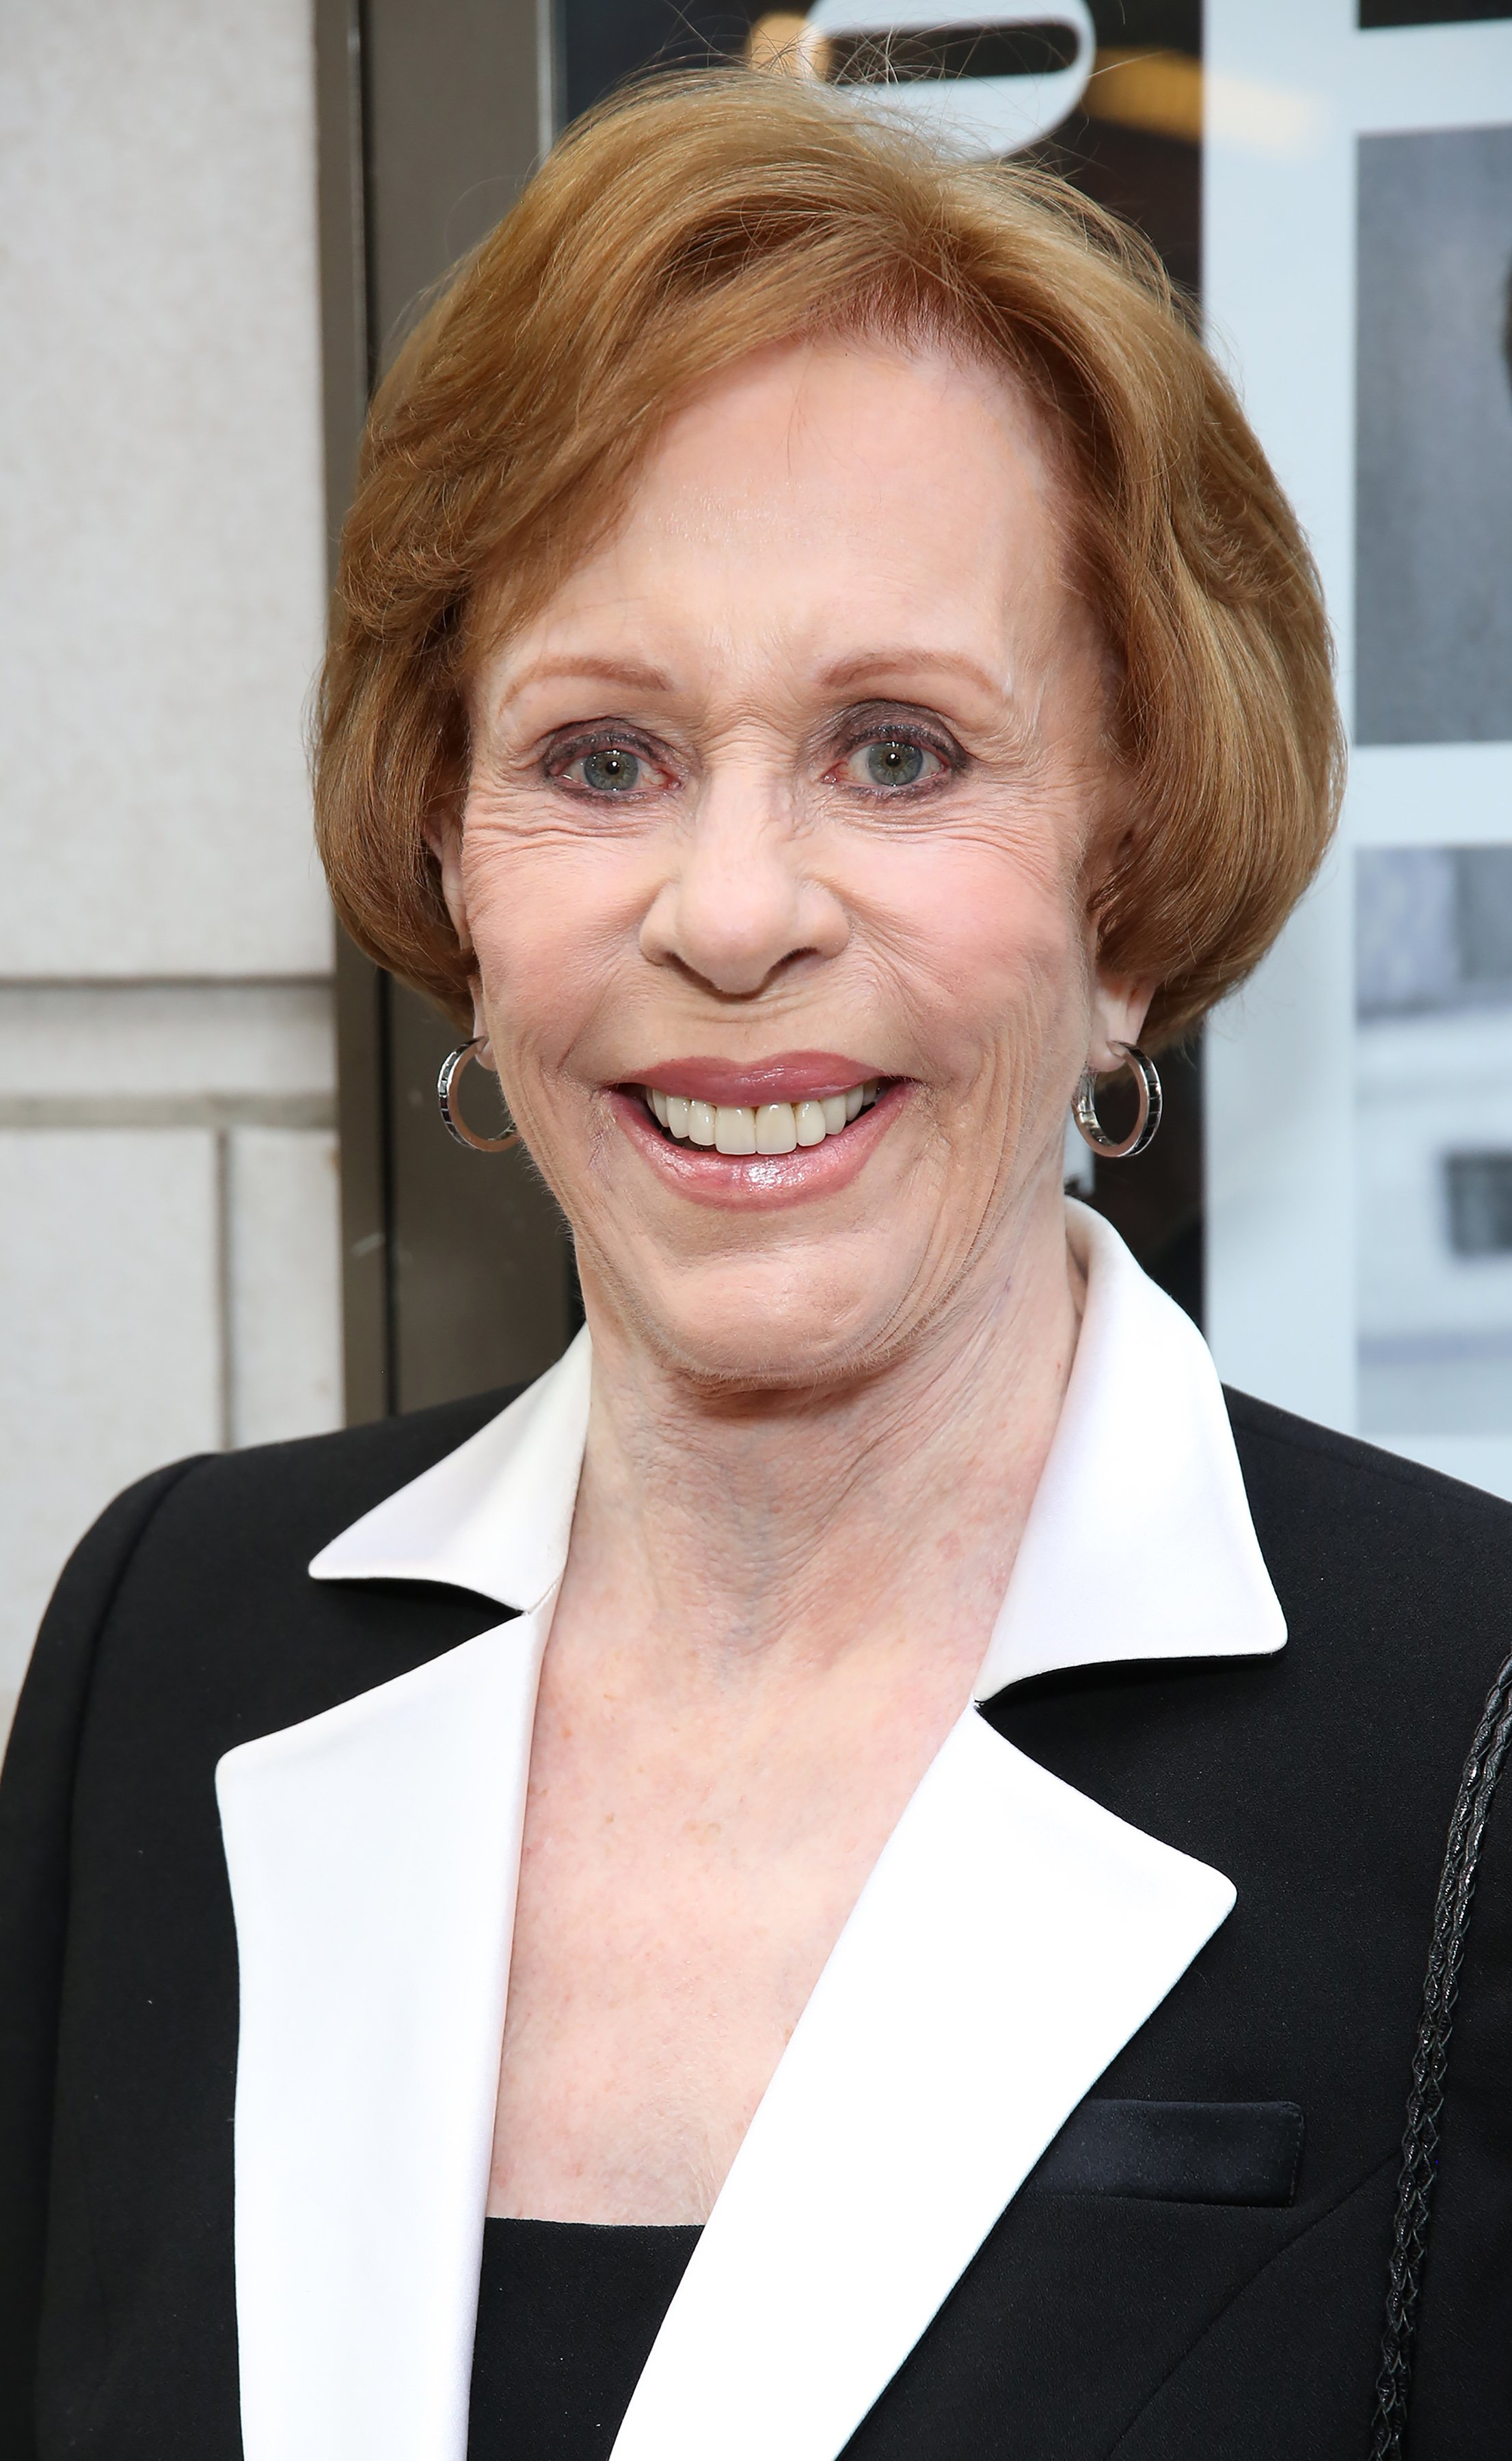 Carol Burnett at the Broadway Opening Night performance of 'The Prince of Broadway' on August 24, 2017 | Photo: GettyImages